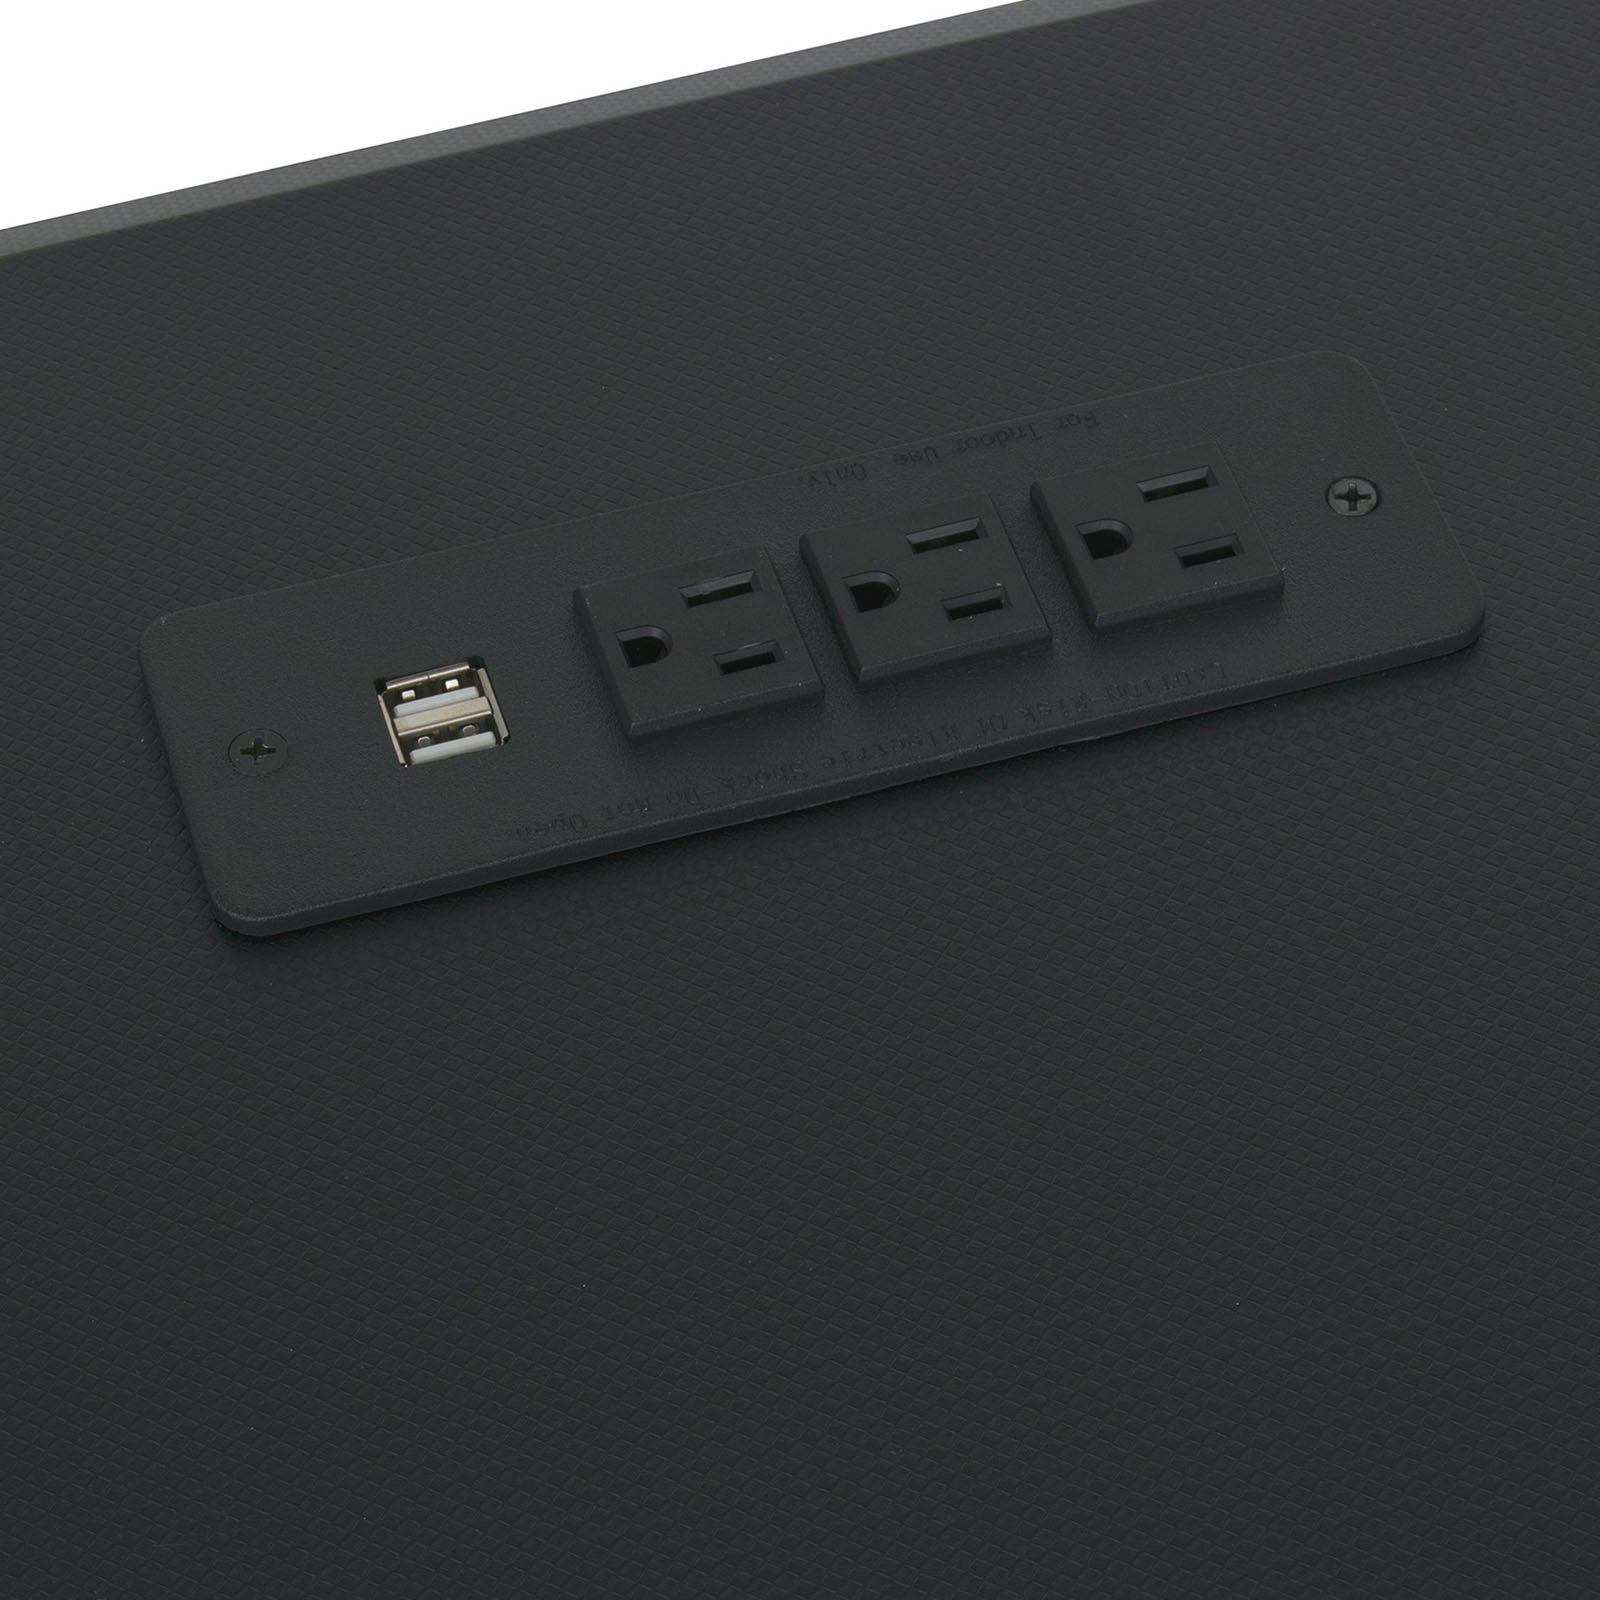 51257 Overlord Desk detail5b